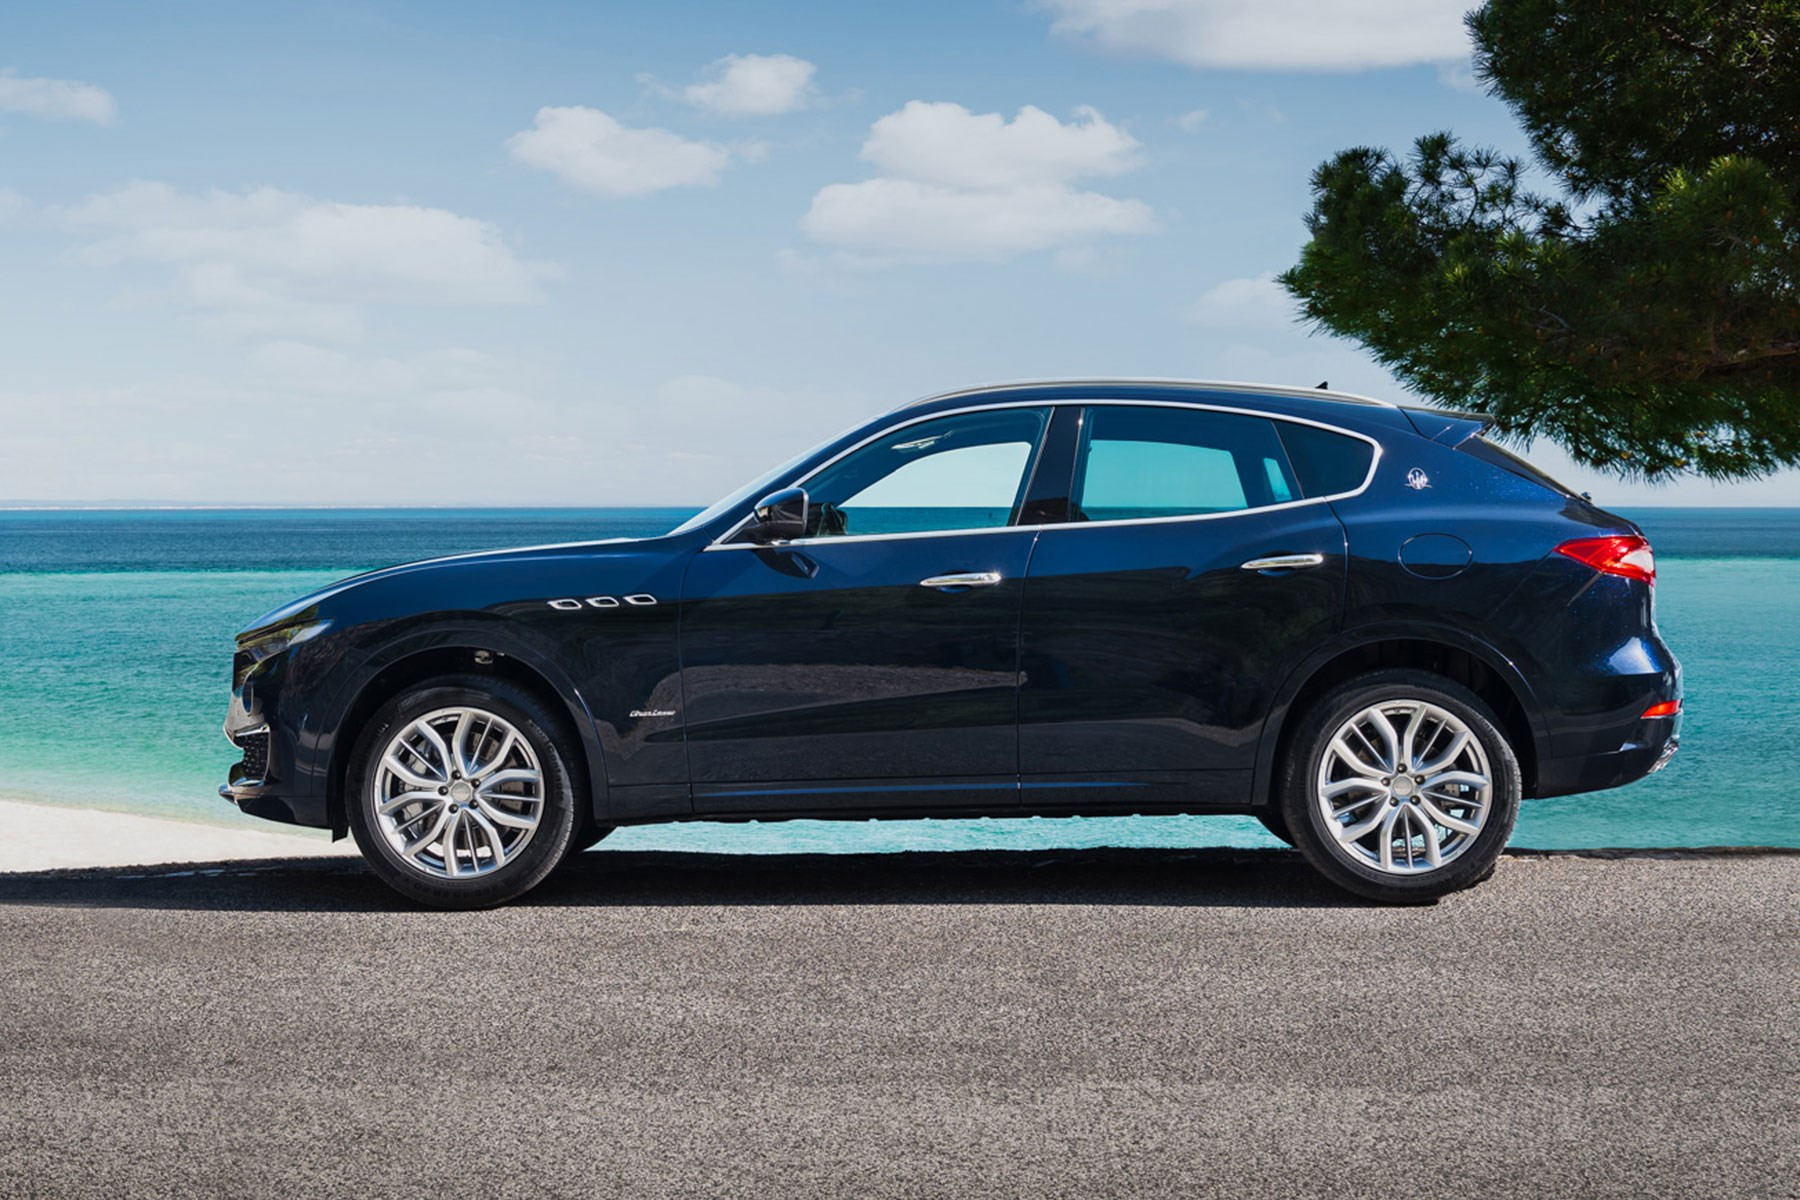 Maserati Levante S (2019) review: GranLusso SUV driven | CAR